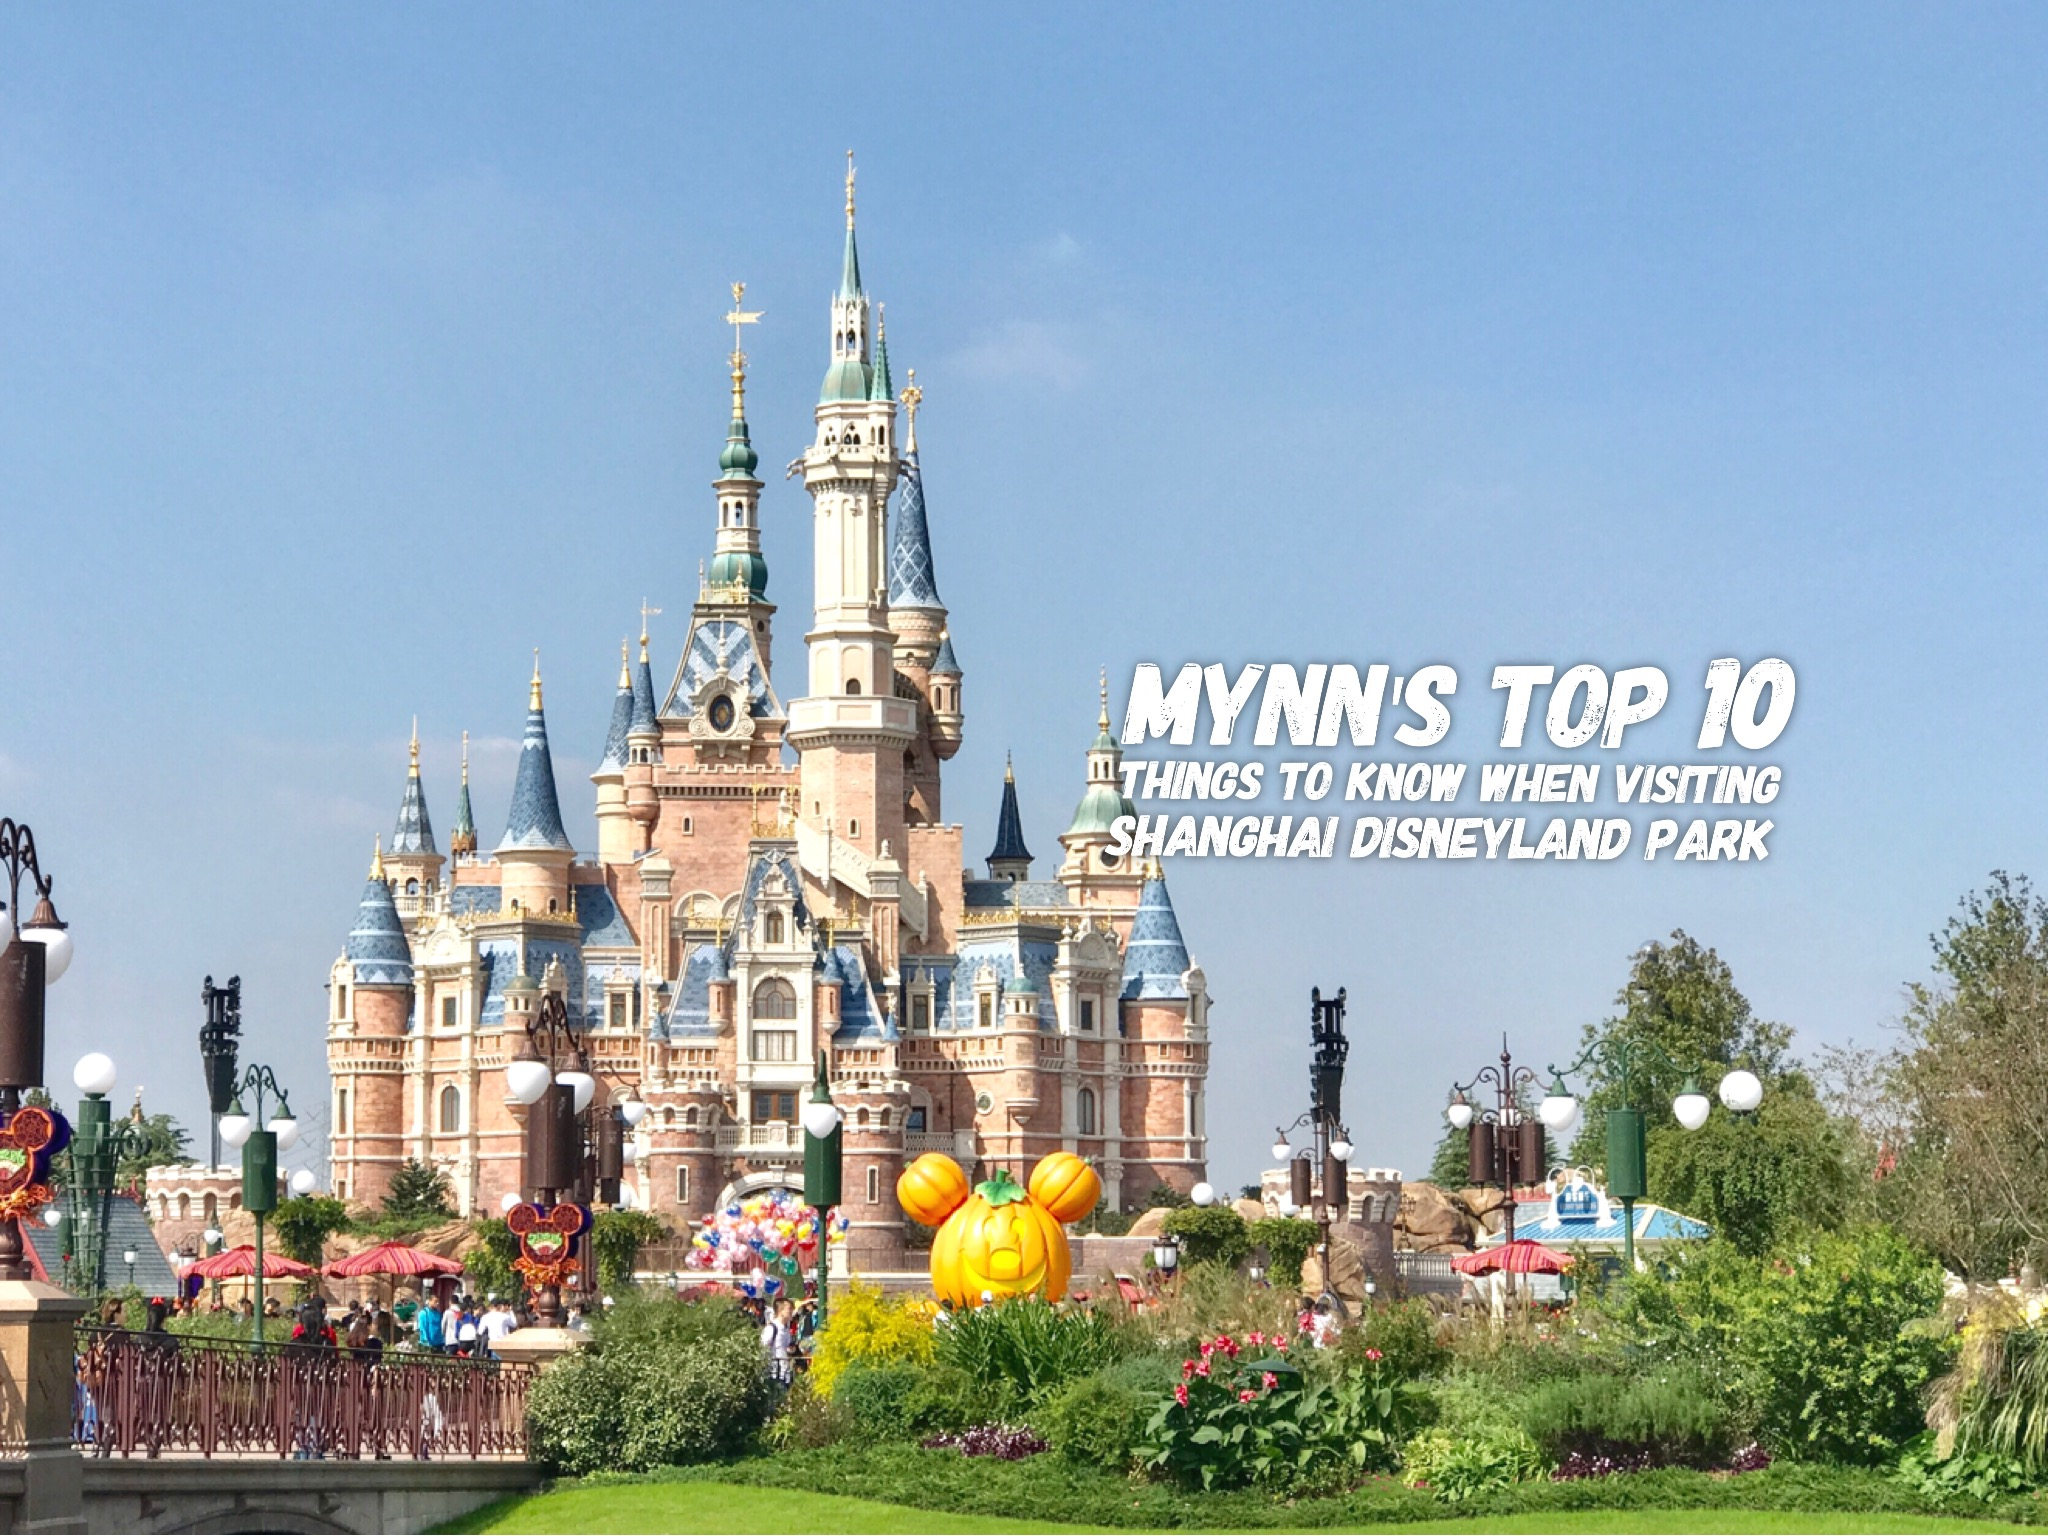 Mynn's Top 10 Things to Know When Visiting Shanghai Disneyland Park, China